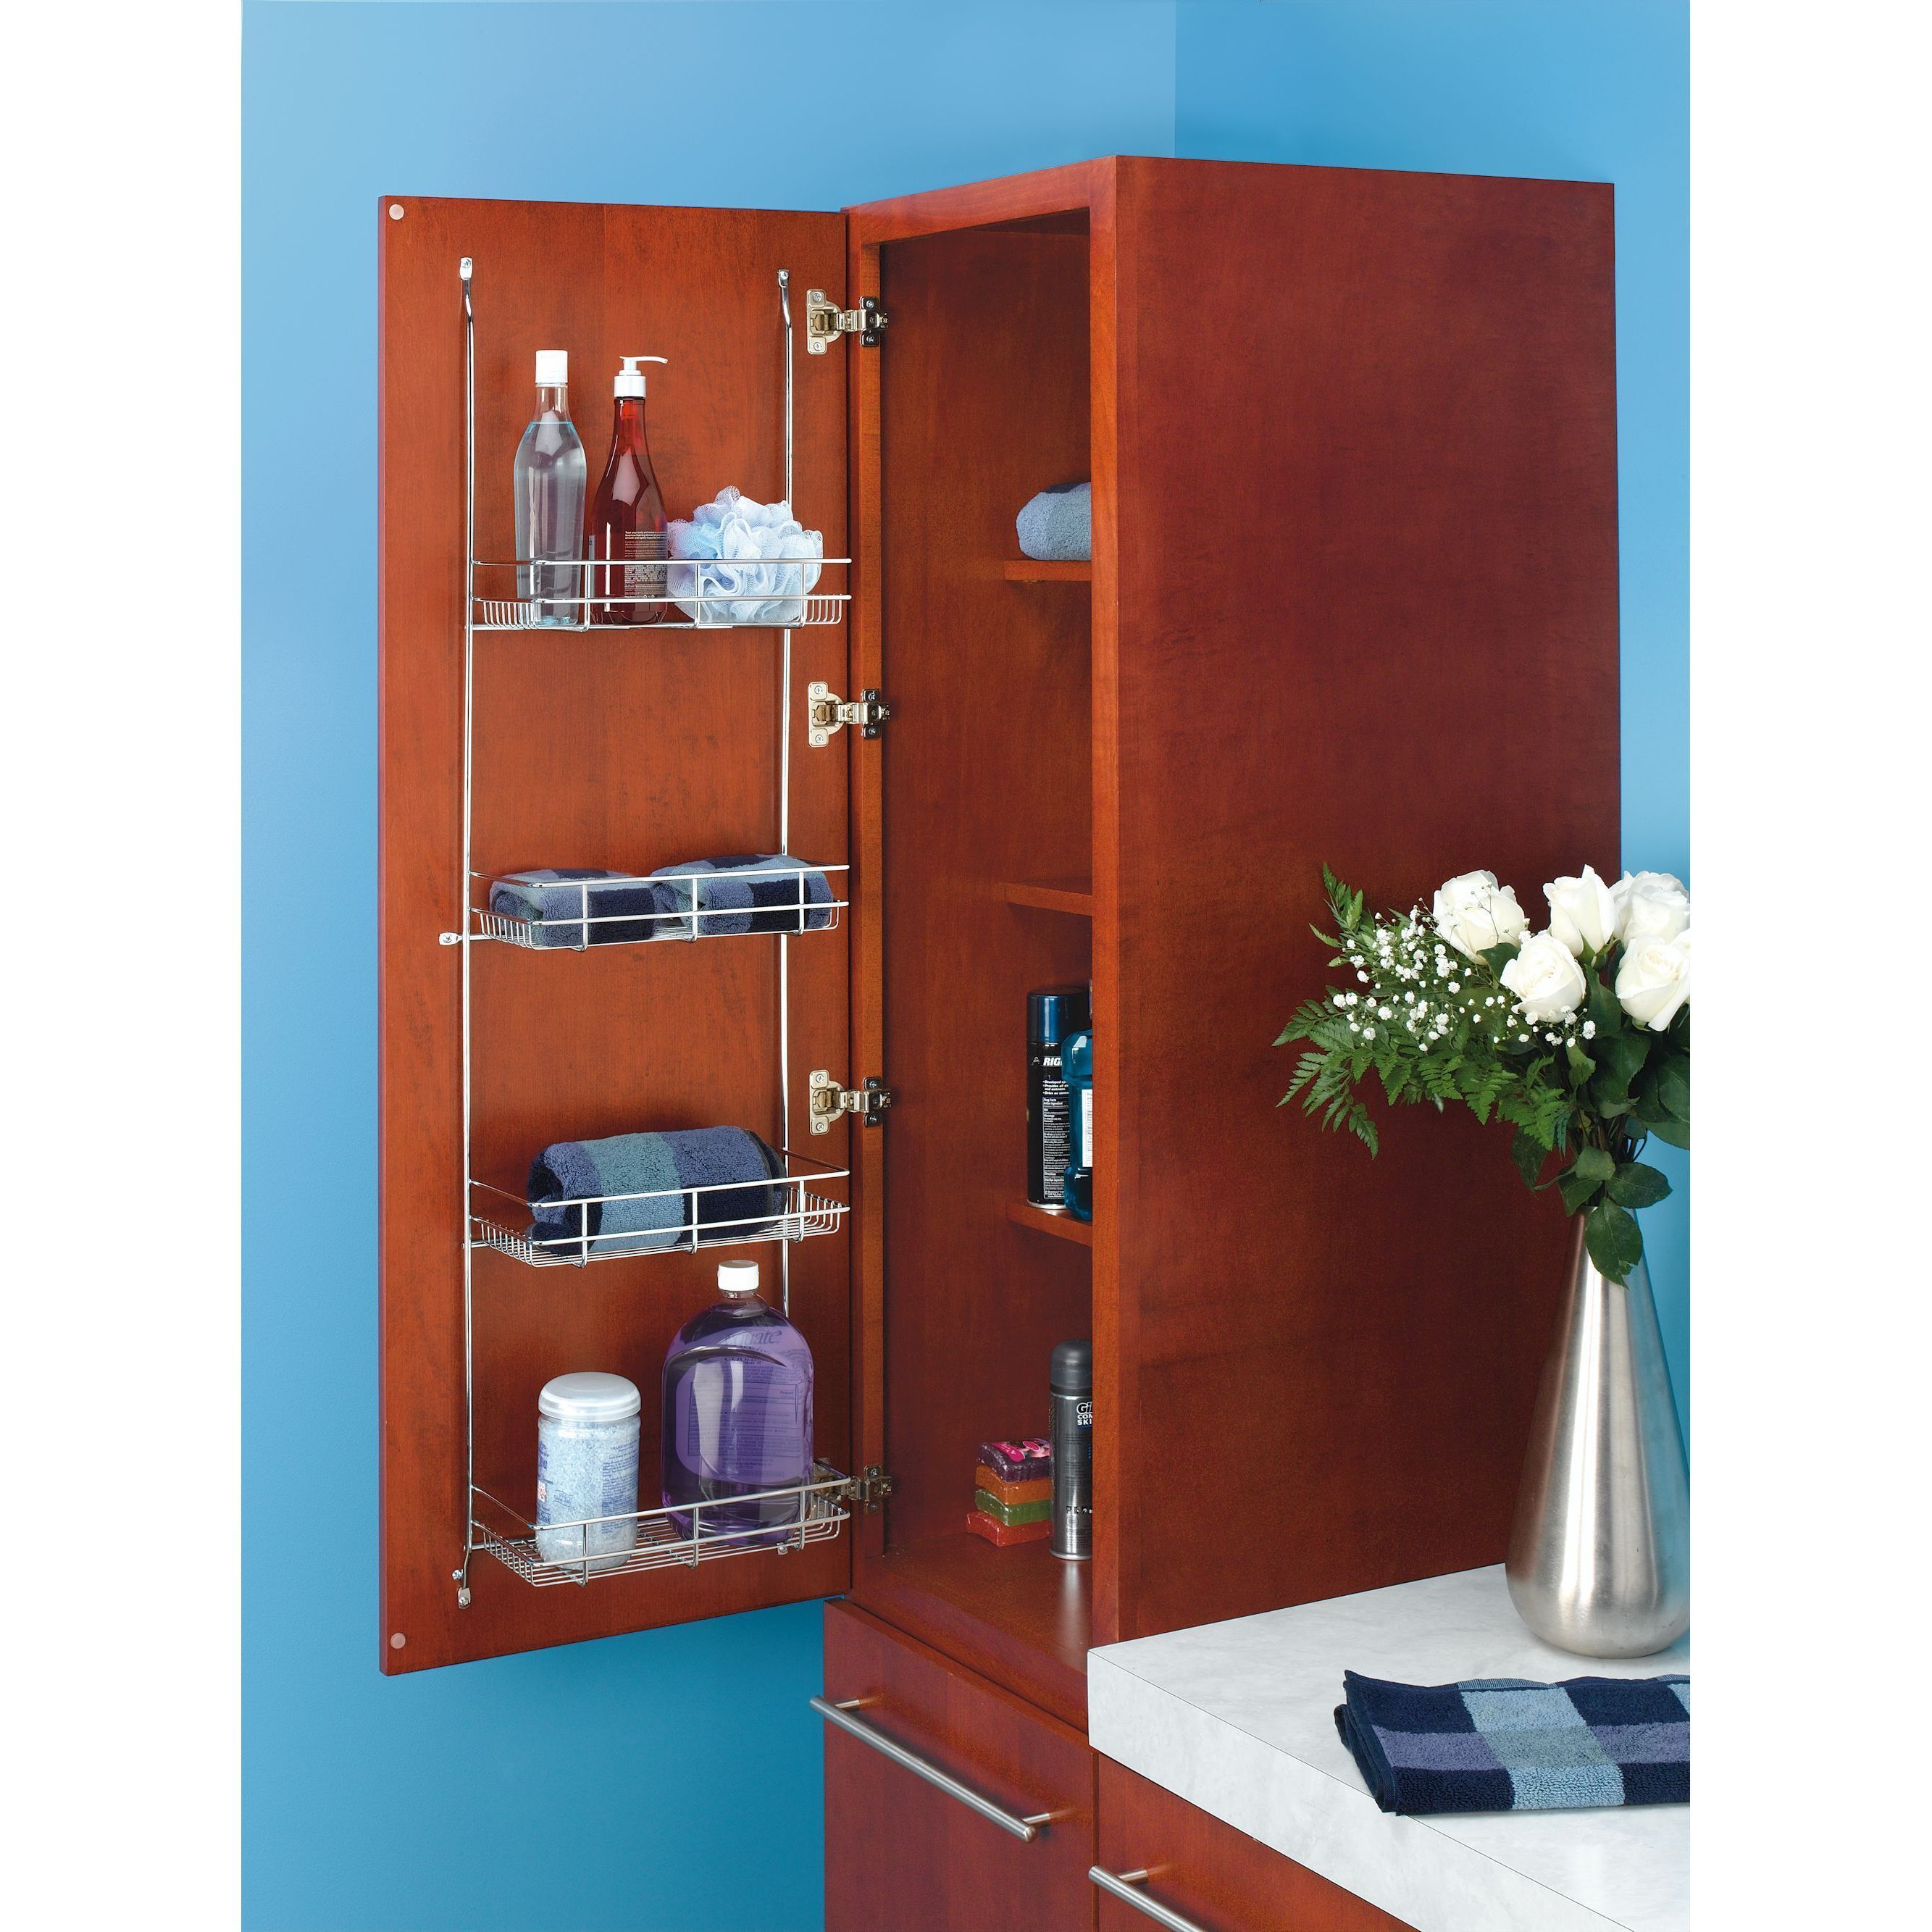 Create Instant Storage Space For Hand Towels, Hair Care Products